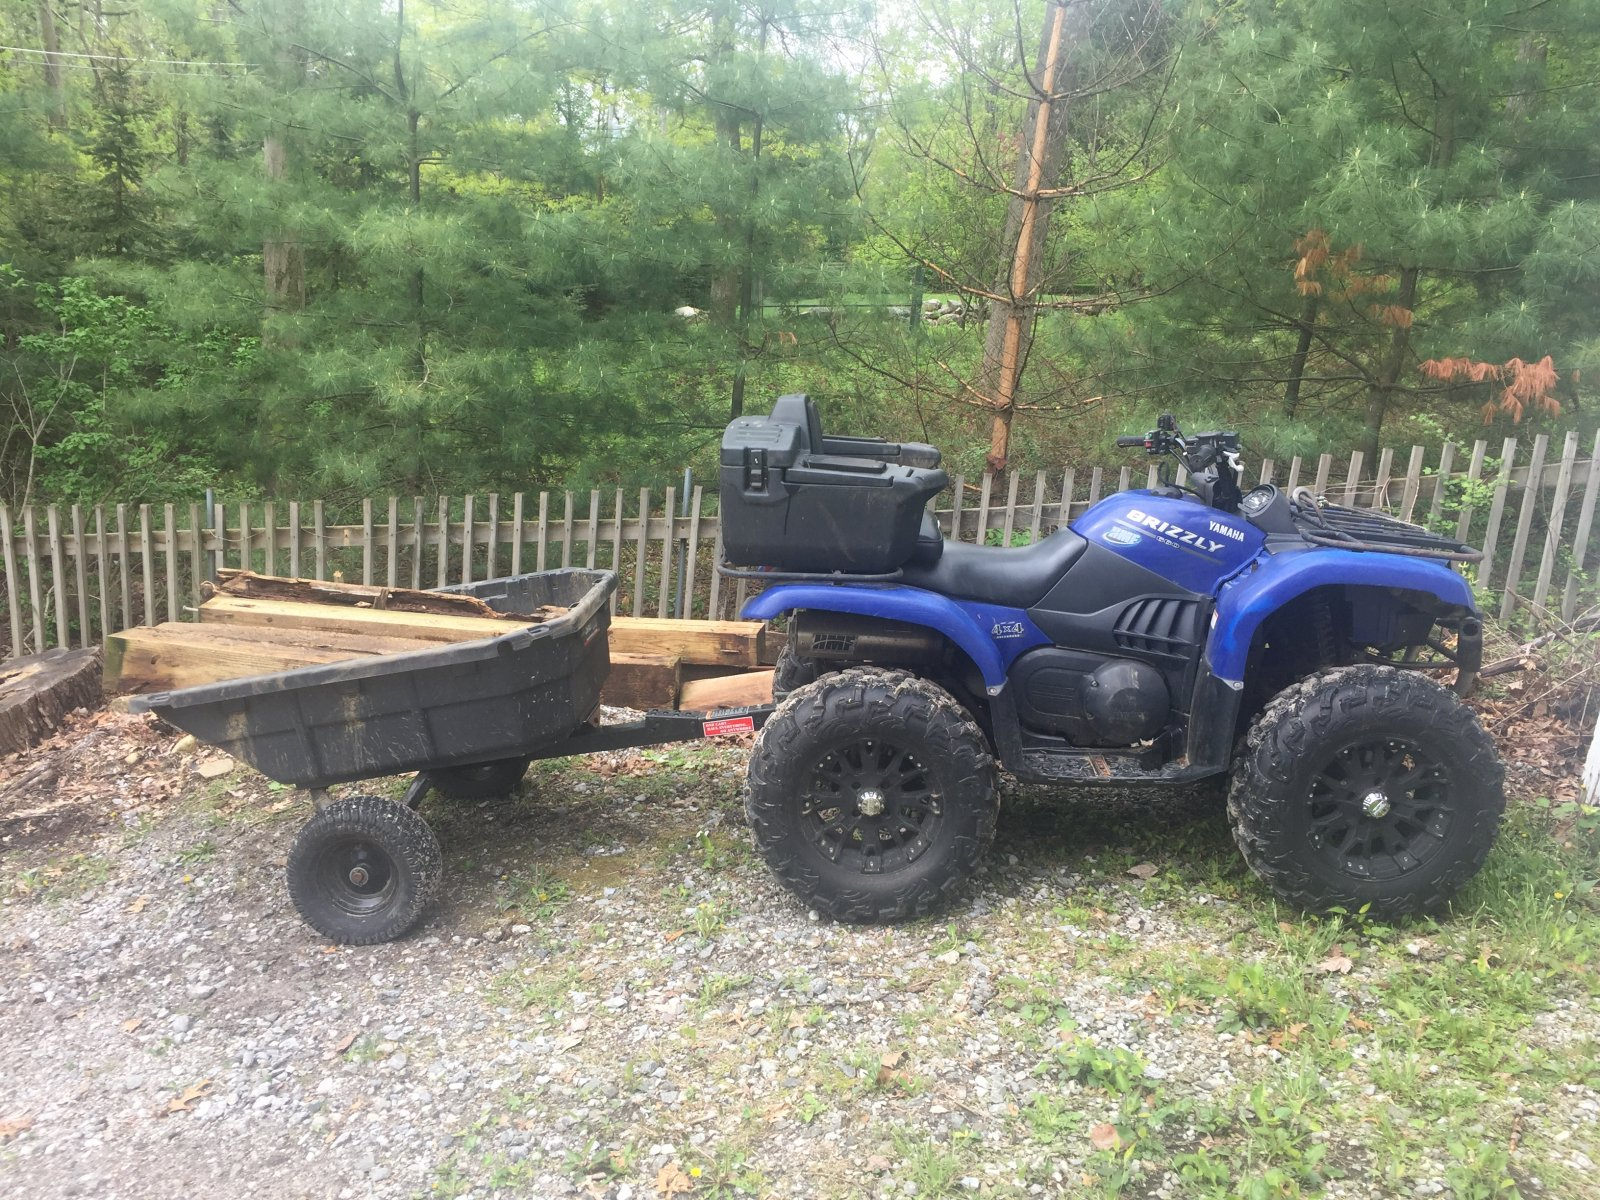 Loading Wood with my ATV